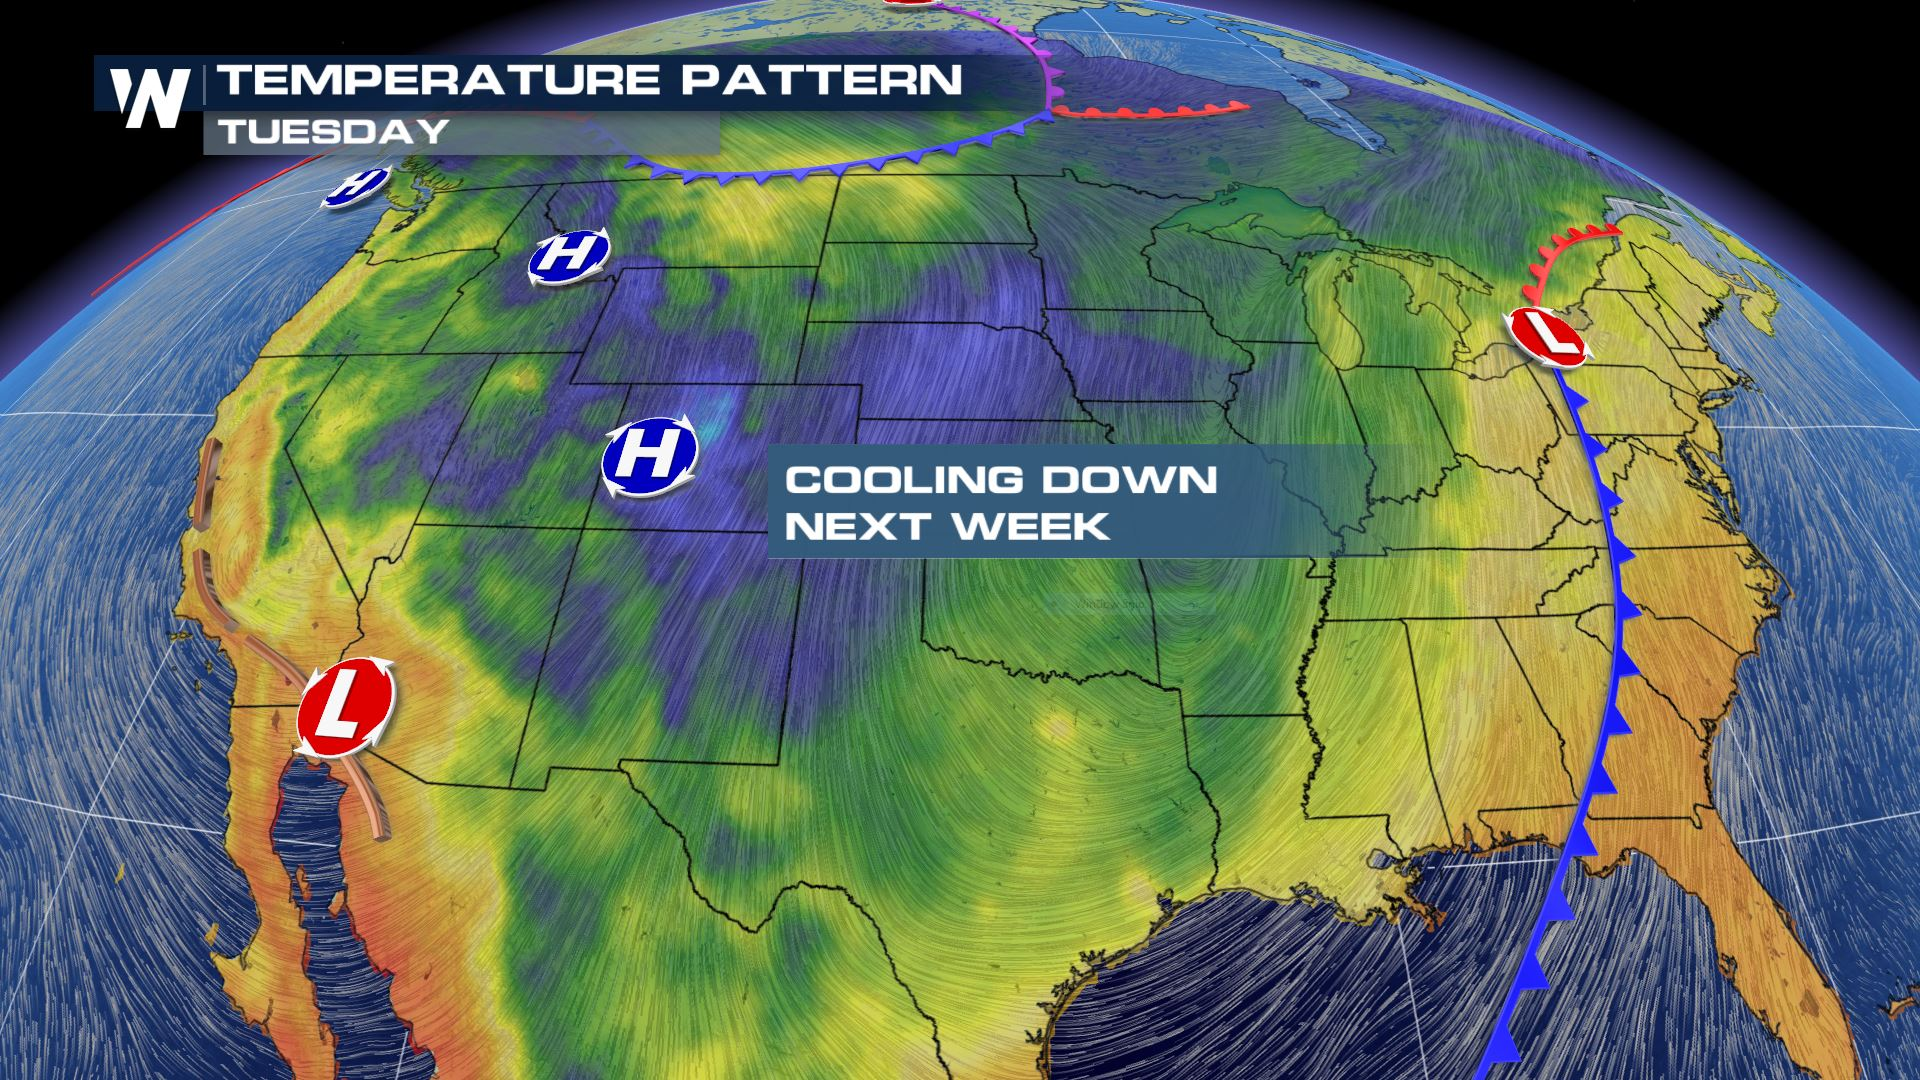 Cooler temperatures arrive for many next week